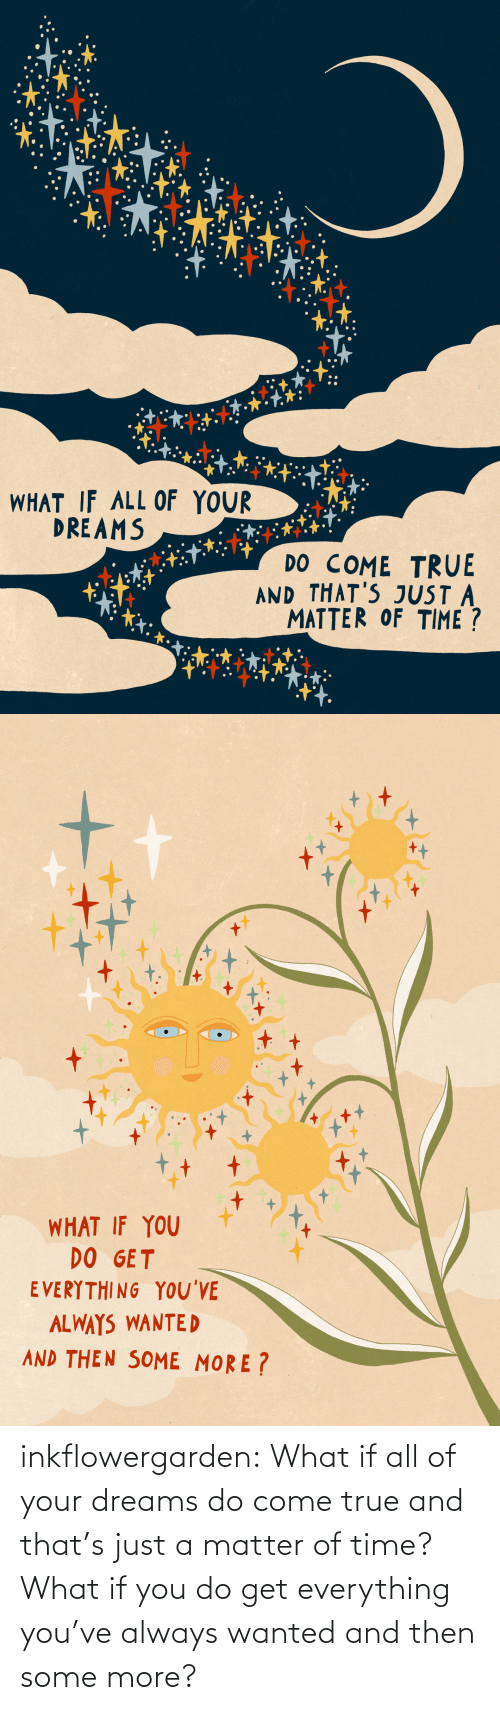 A Matter: inkflowergarden: What if all of your dreams do come true and that's just a matter of time? What if you do get everything you've always wanted and then some more?